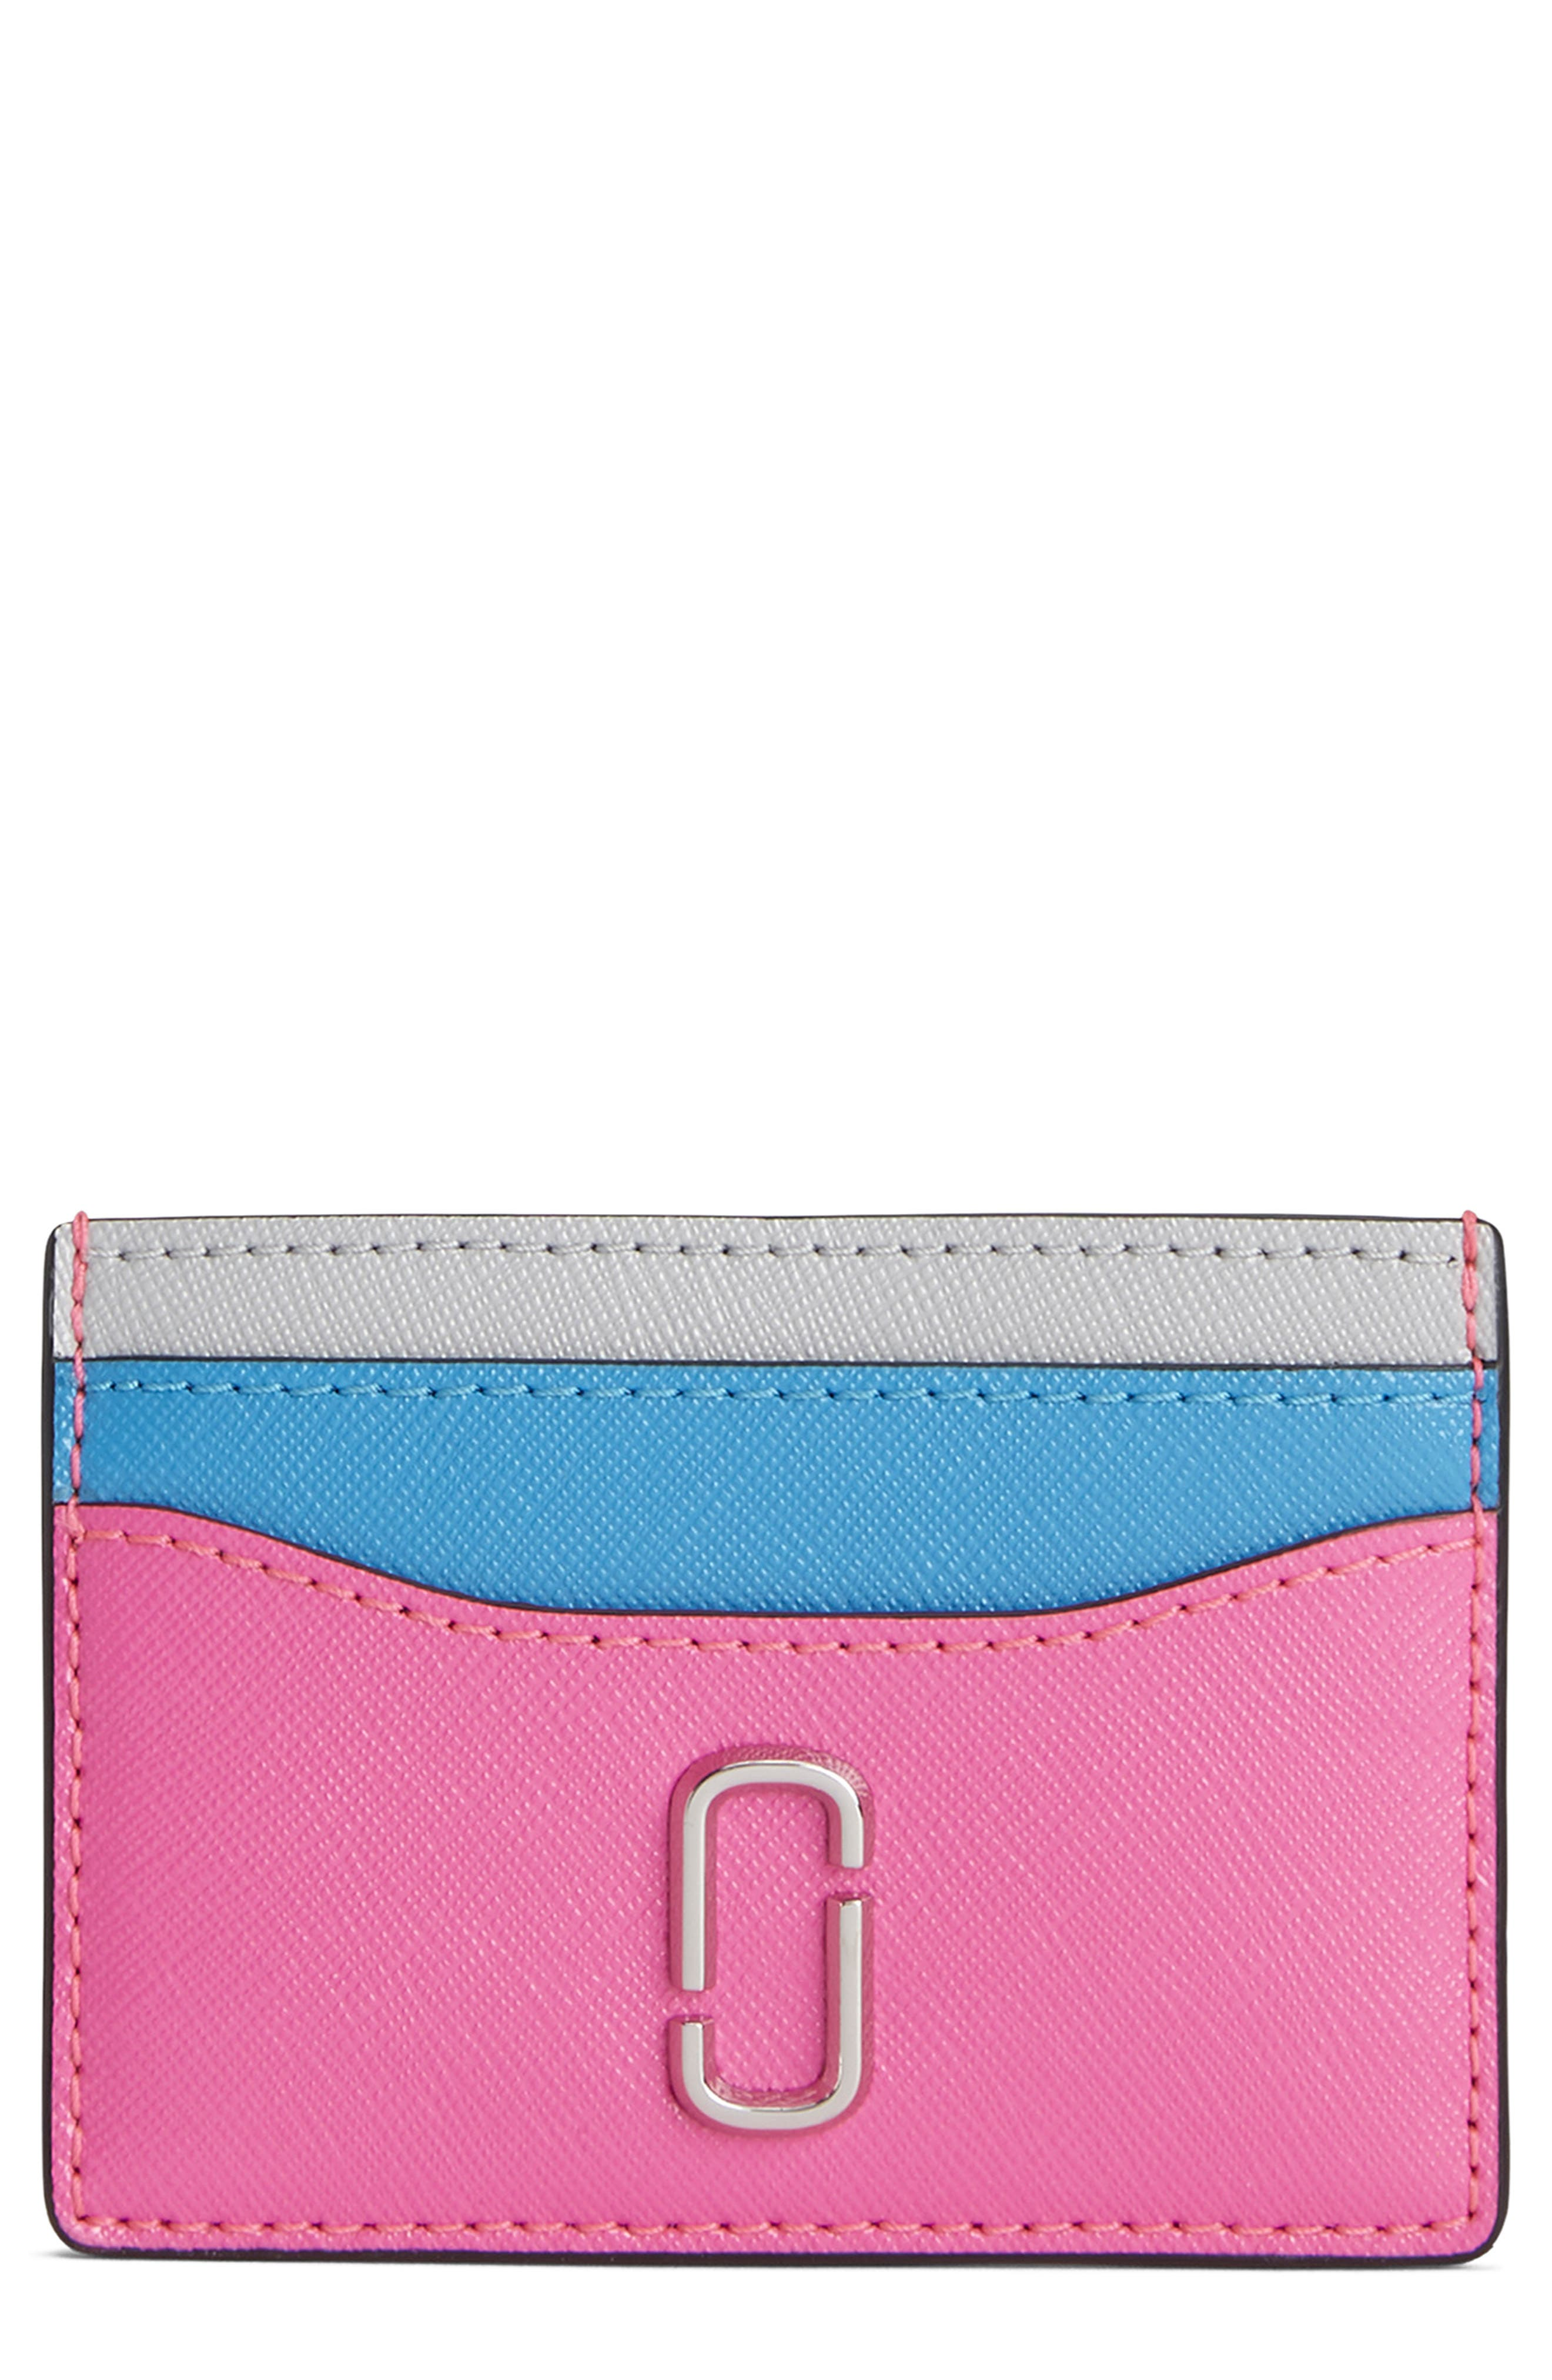 Snapshot Leather Card Case,                         Main,                         color, BRIGHT PINK MULTI